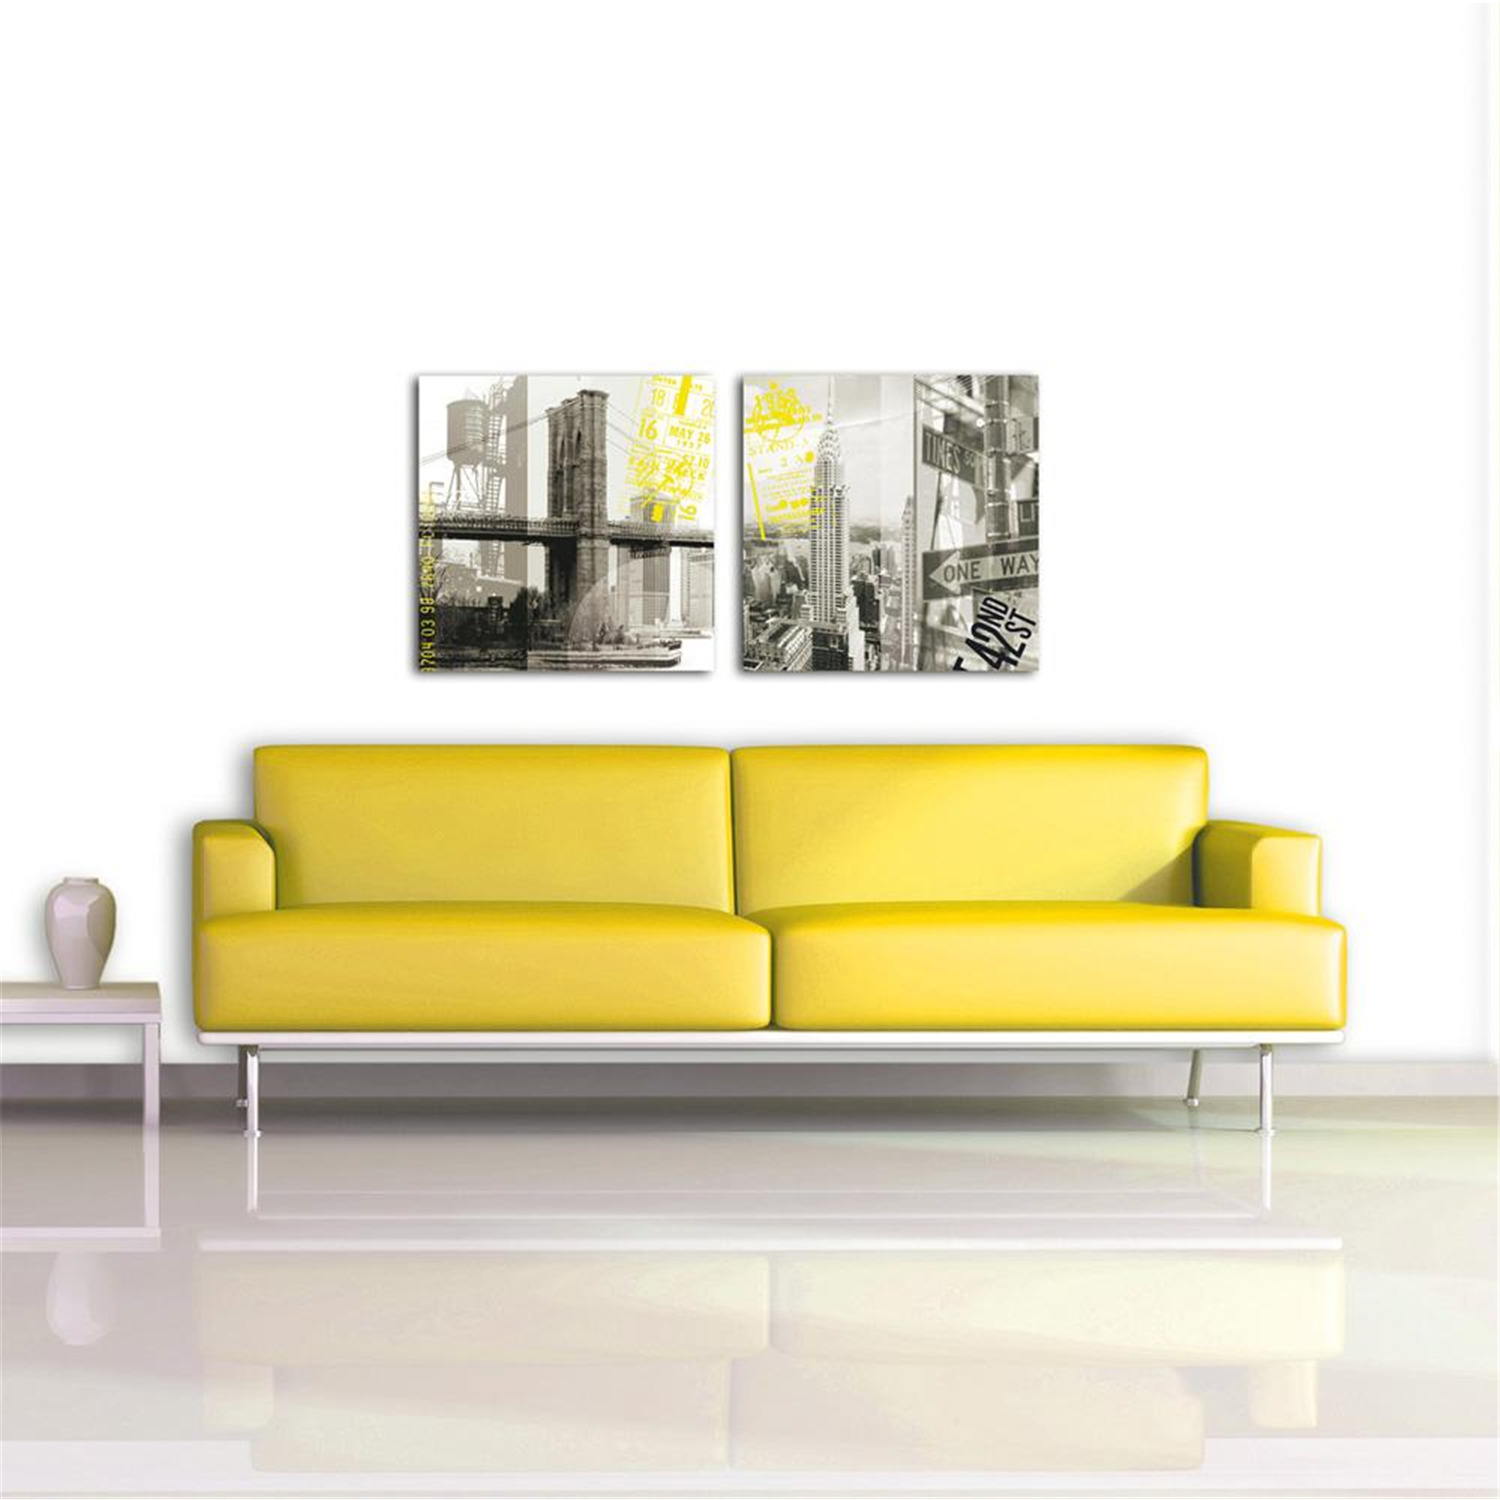 deco glass wall decor art on glass nyc chrysler reflections ojcommerce. Black Bedroom Furniture Sets. Home Design Ideas